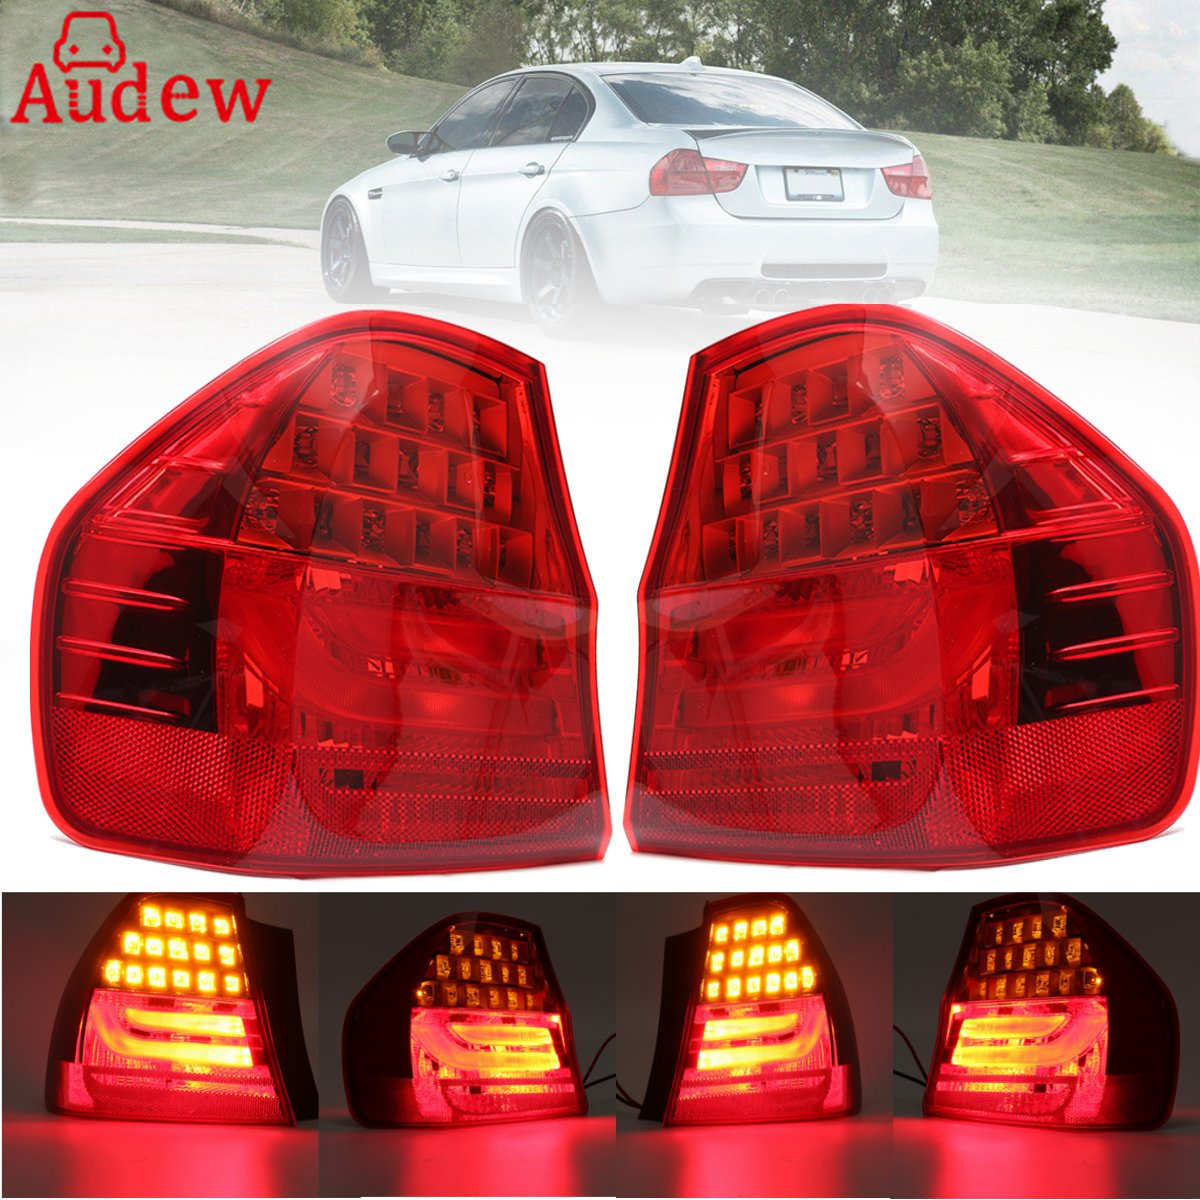 1Pcs Car Rear Tail Turn Lihgt Broke Stop Lamp LED Light LEFT / RIGHT Side Light For BMW  ...